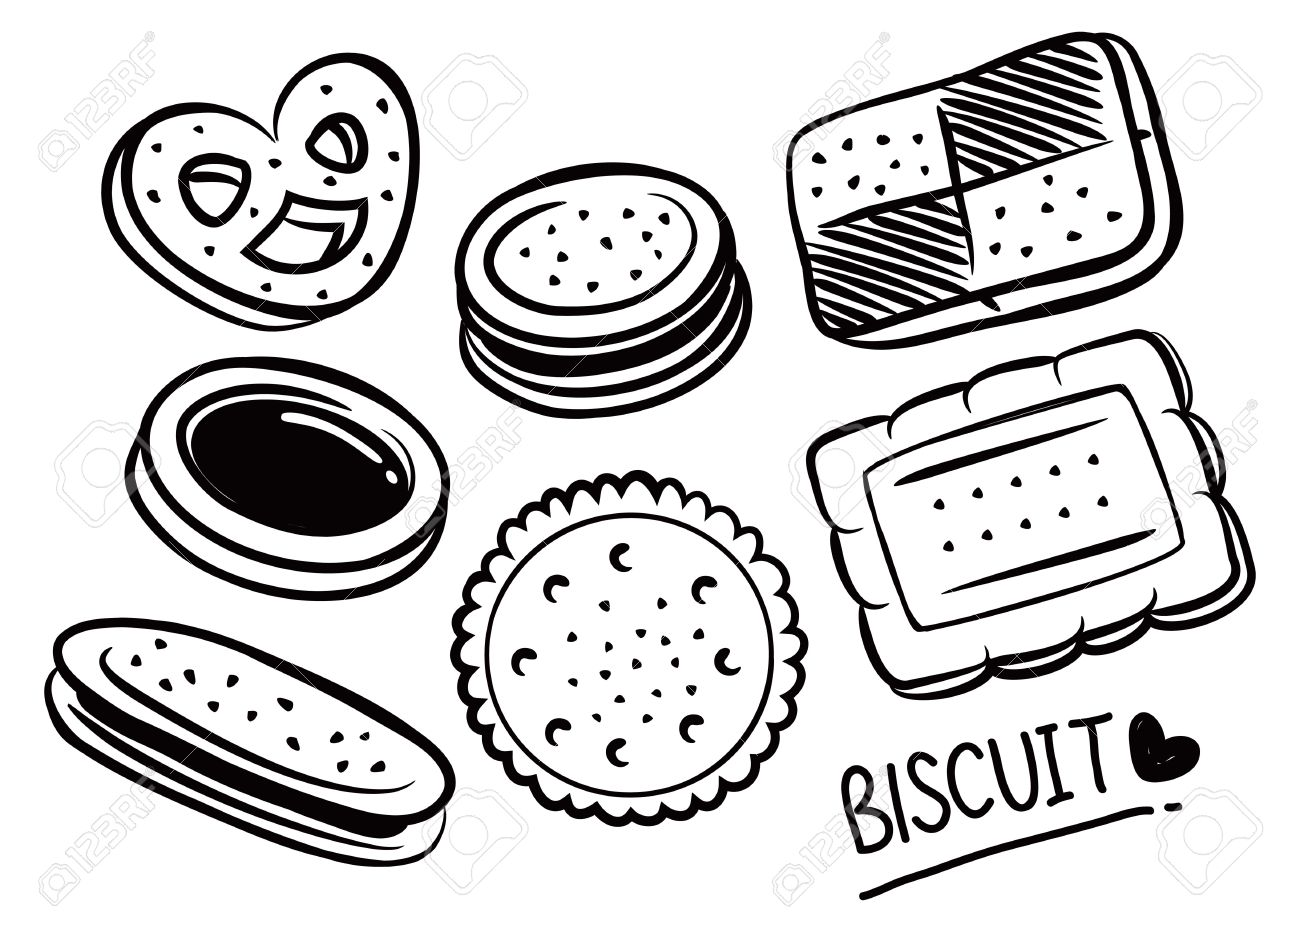 Biscuit Clipart Black And White 1 Clipart Station